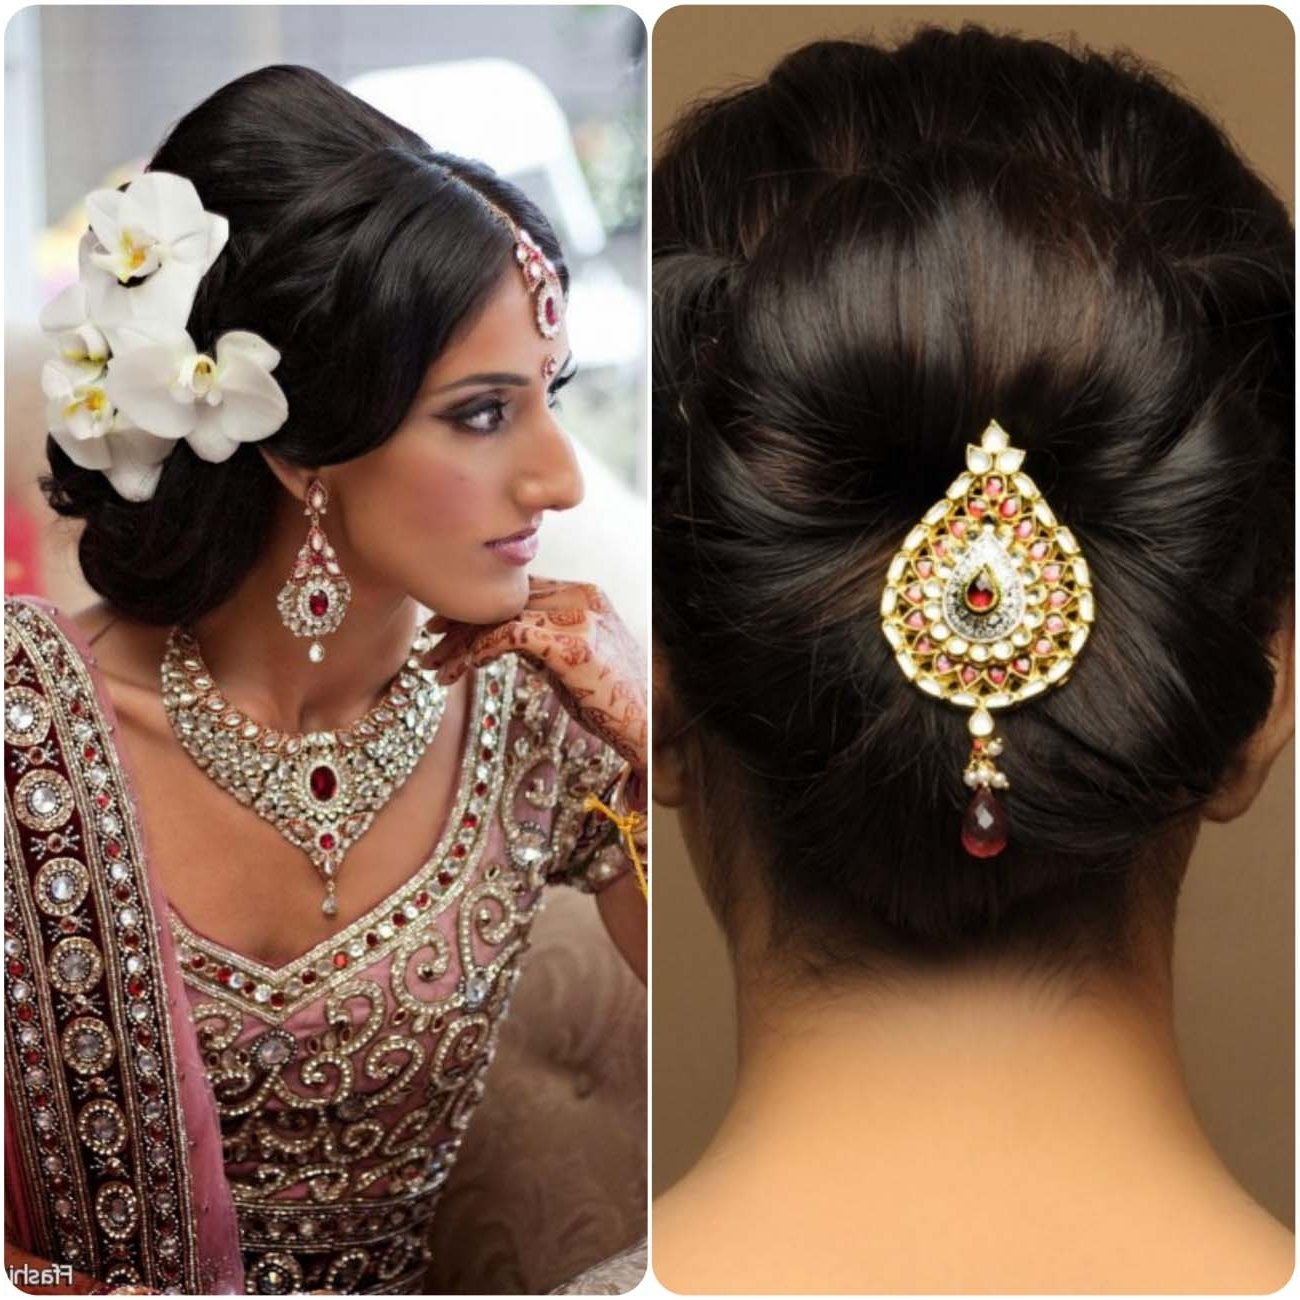 Photo Gallery Of Wedding Hairstyles For Round Faces Viewing 12 Of